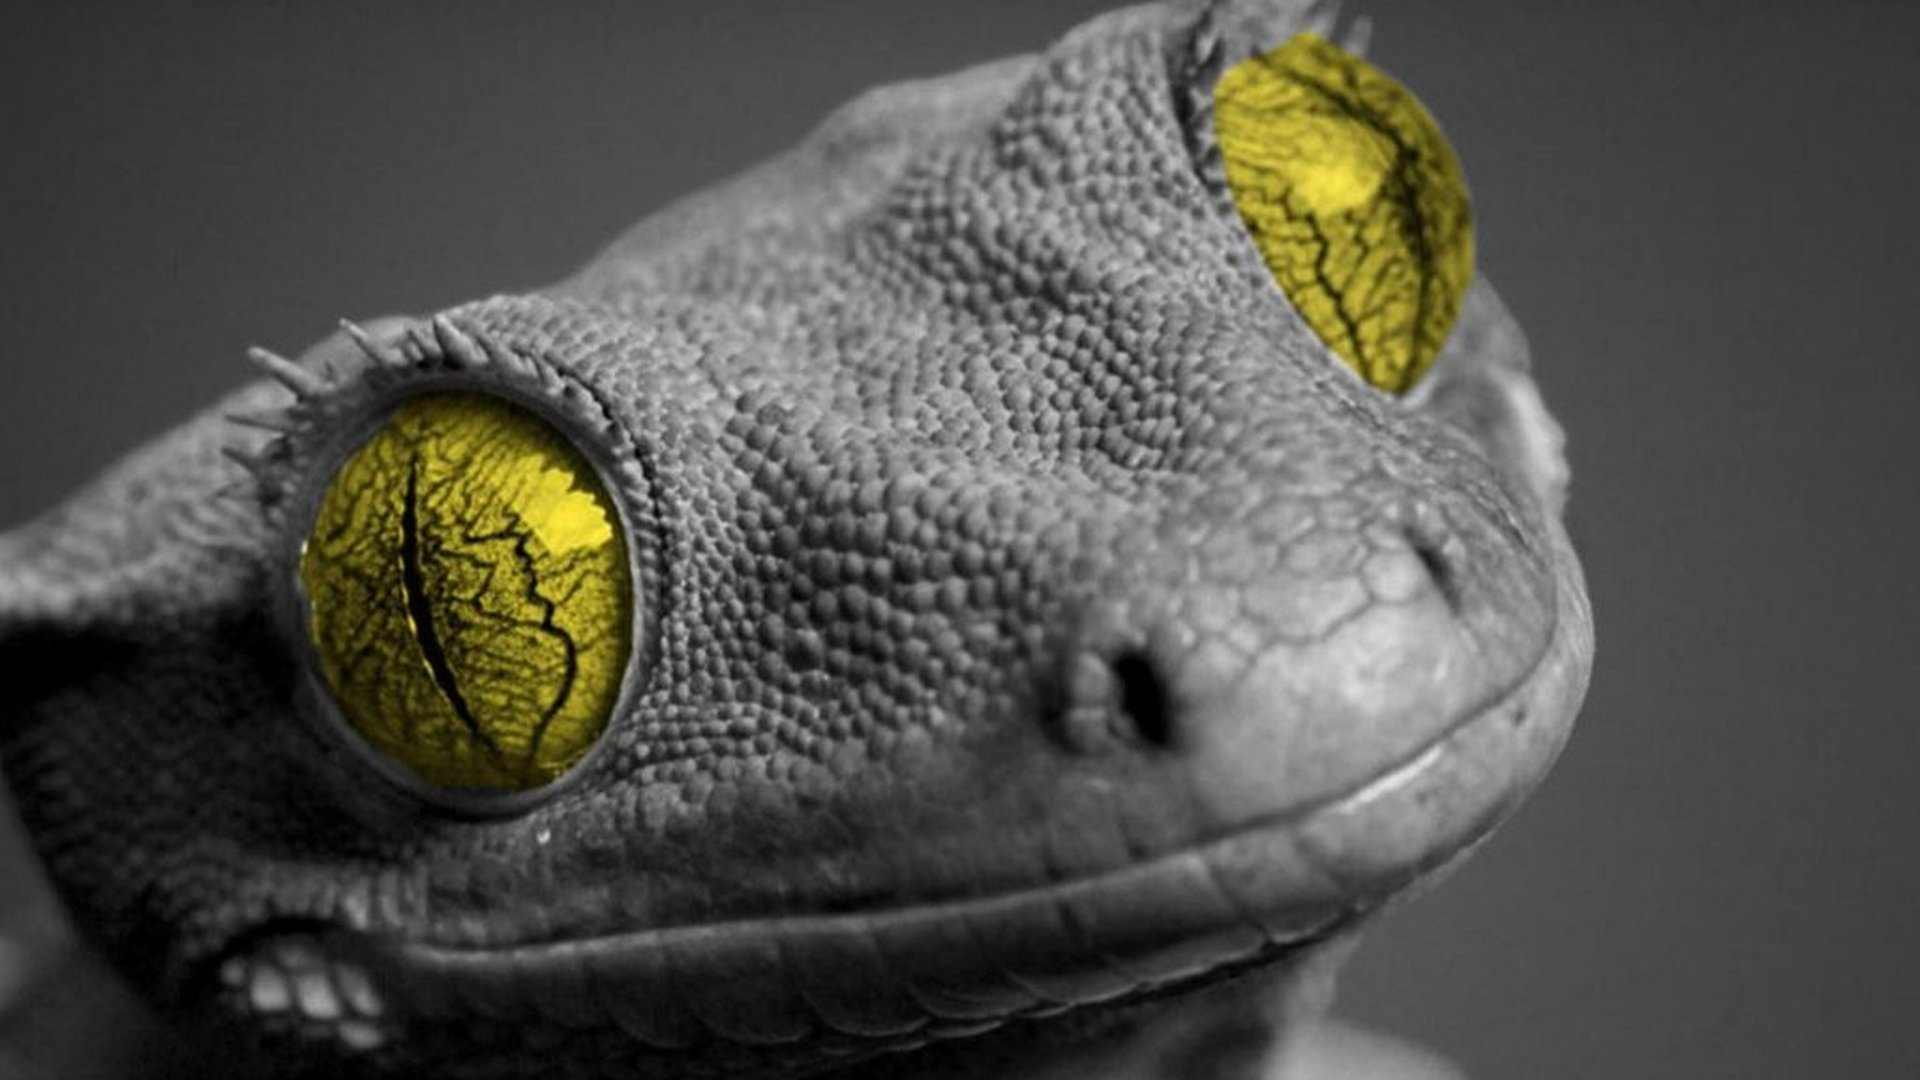 Awesome Gecko free wallpaper ID:114523 for hd 1080p computer